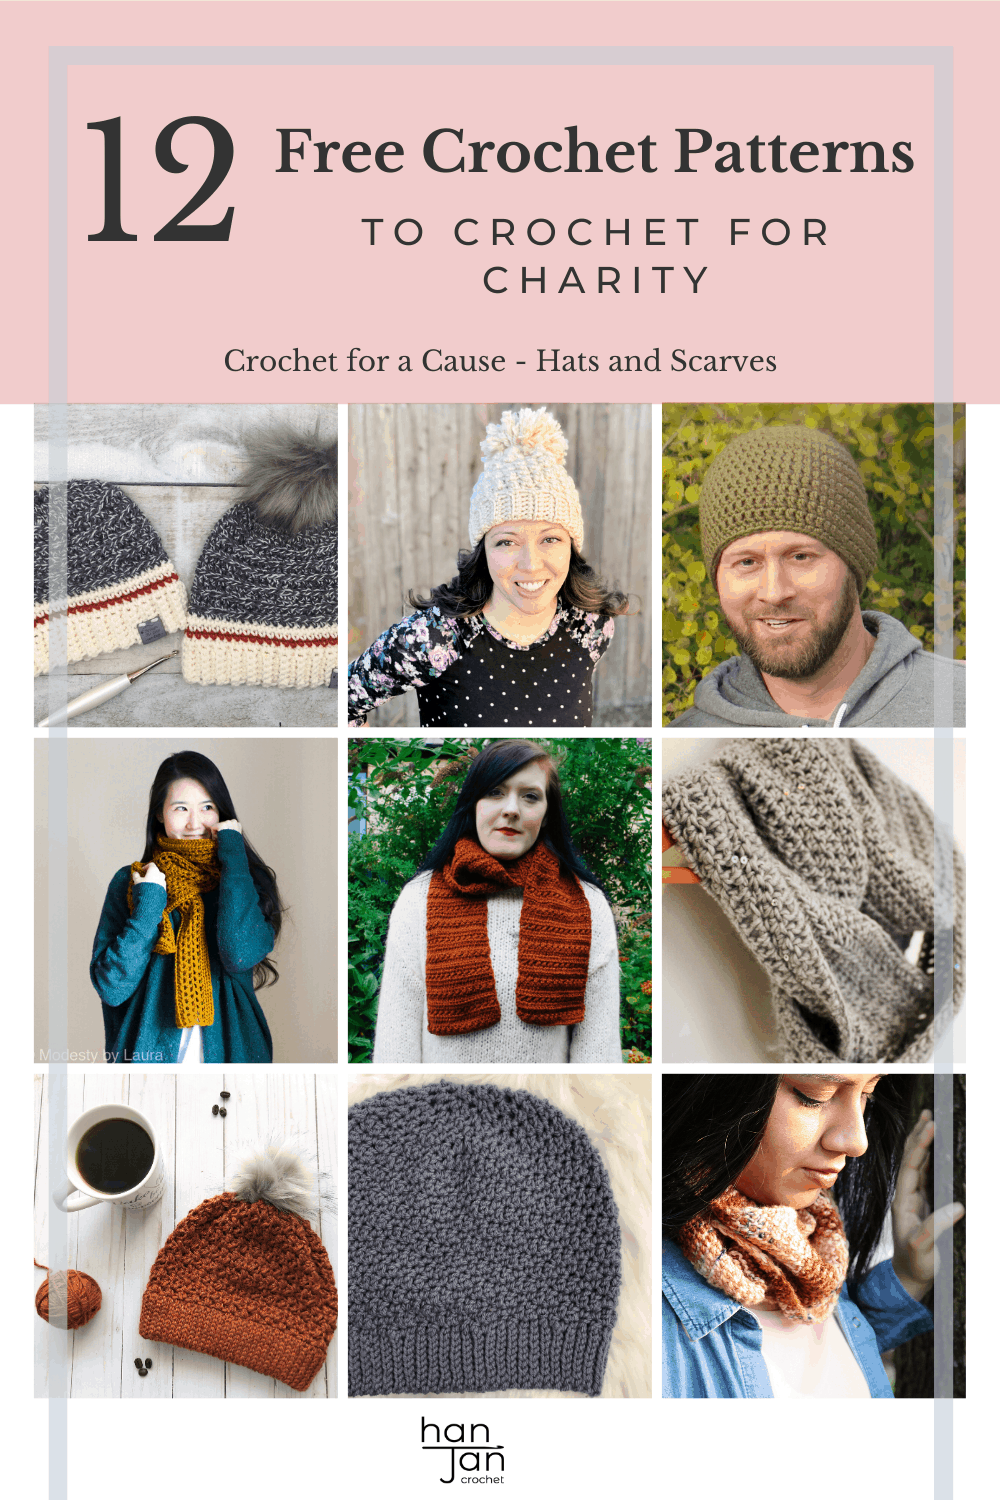 Crochet for a Cause 1